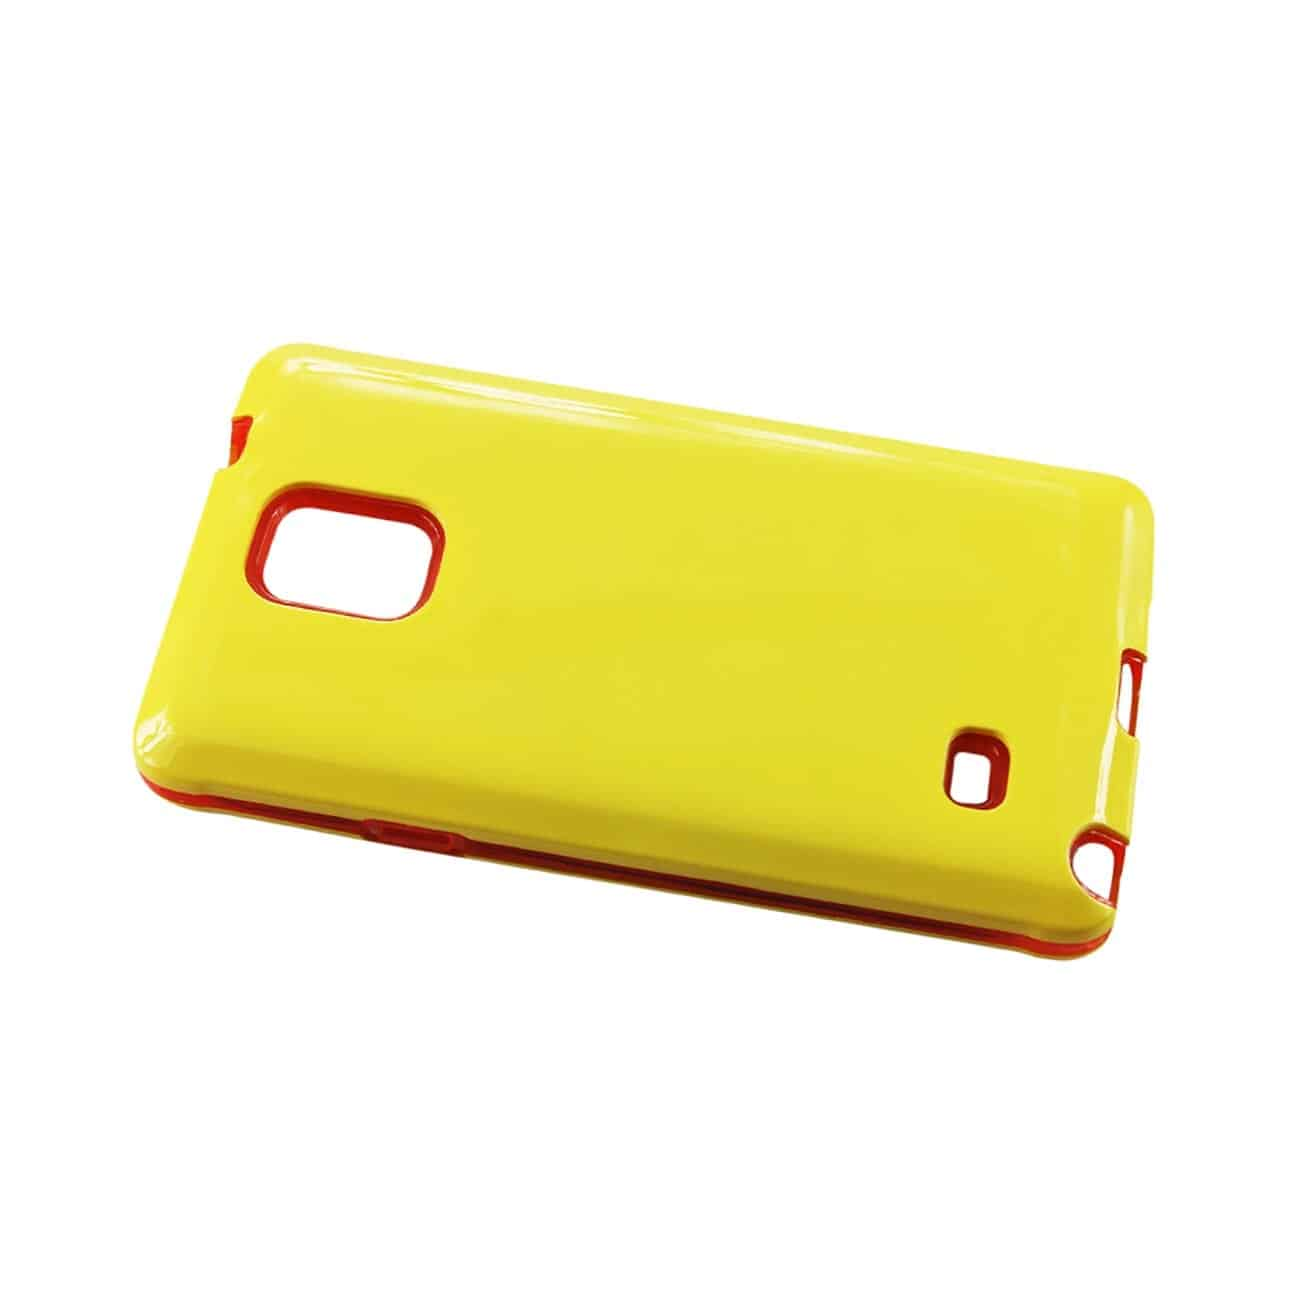 SAMSUNG GALAXY NOTE 4 SLIM ARMOR CANDY SHIELD CASE IN YELLOW